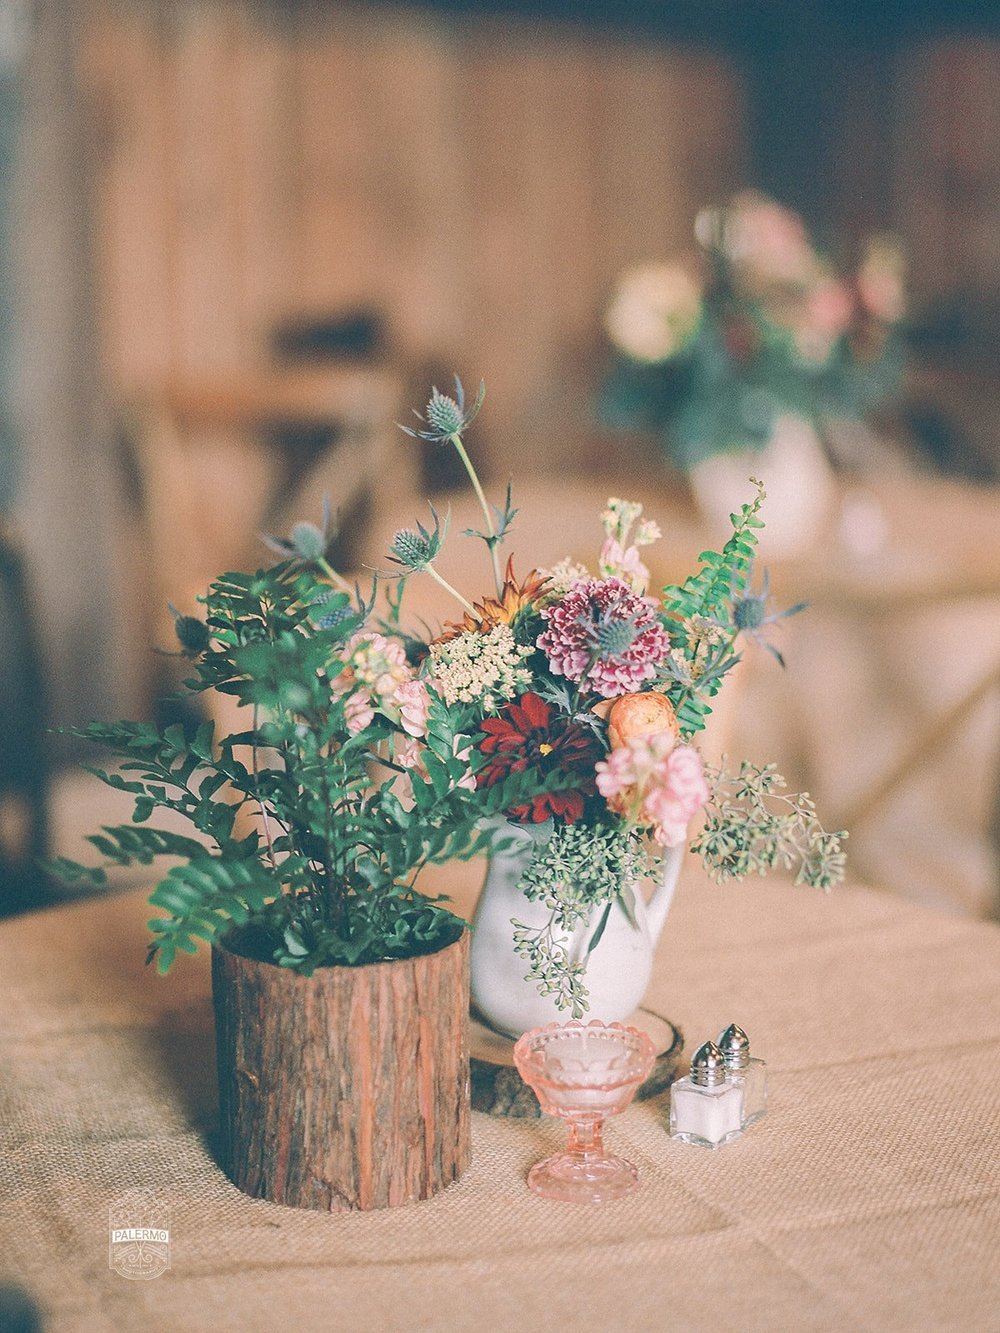 Wedding centerpieces and table settings for rustic fall barn wedding in Pittsburgh, PA planned by Exhale Events. Find more wedding inspiration at exhale-events.com!